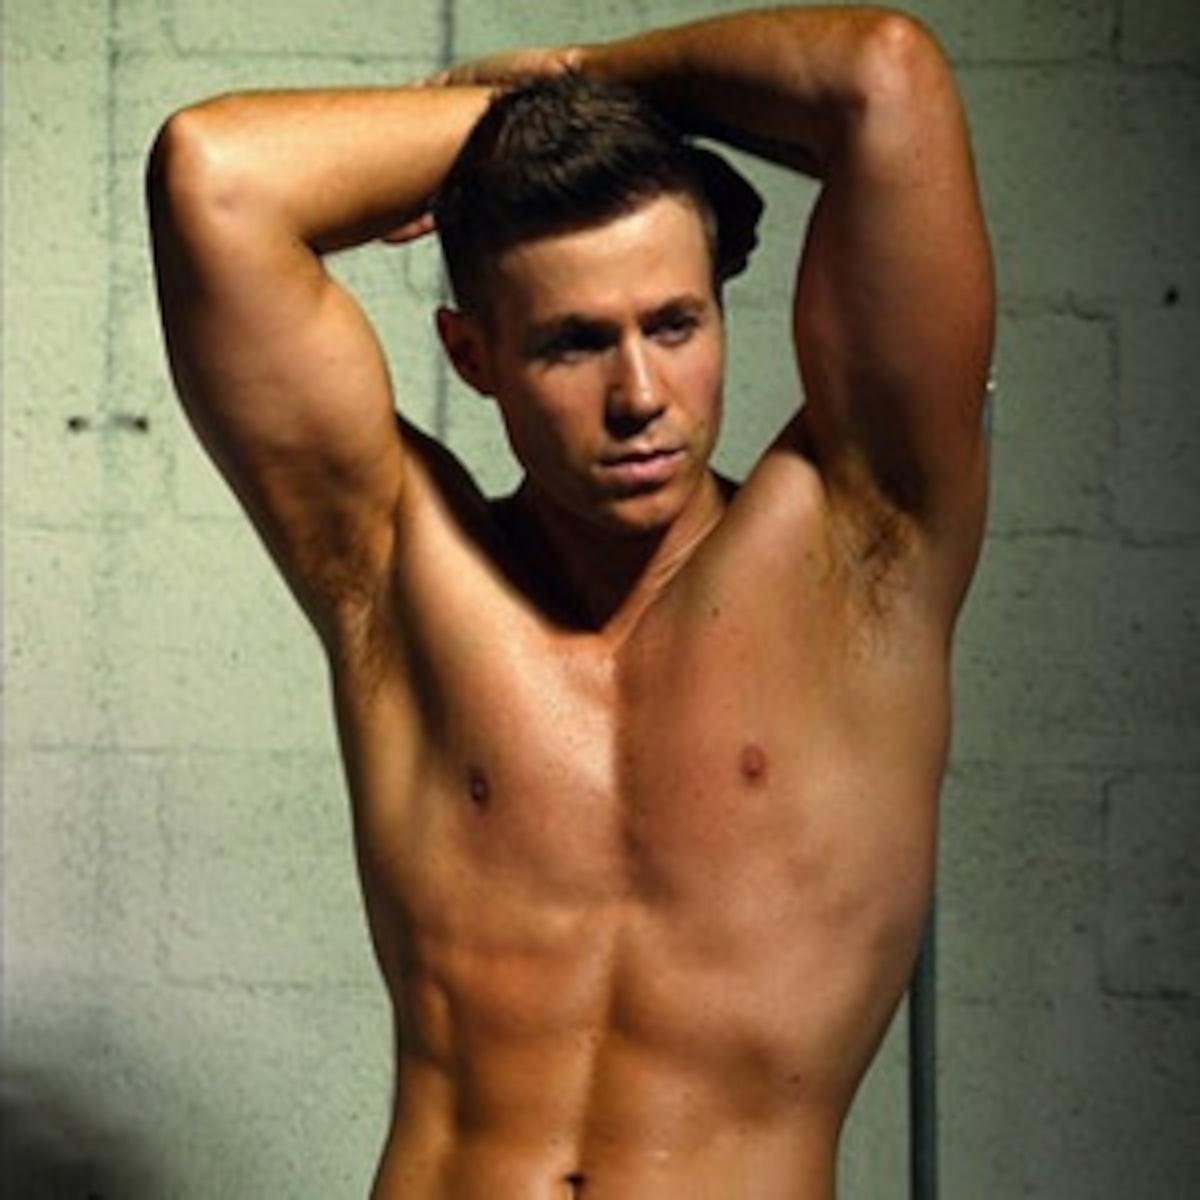 Angel Parker Naked ashley parker angel shows off butt crack in sexy shirtless